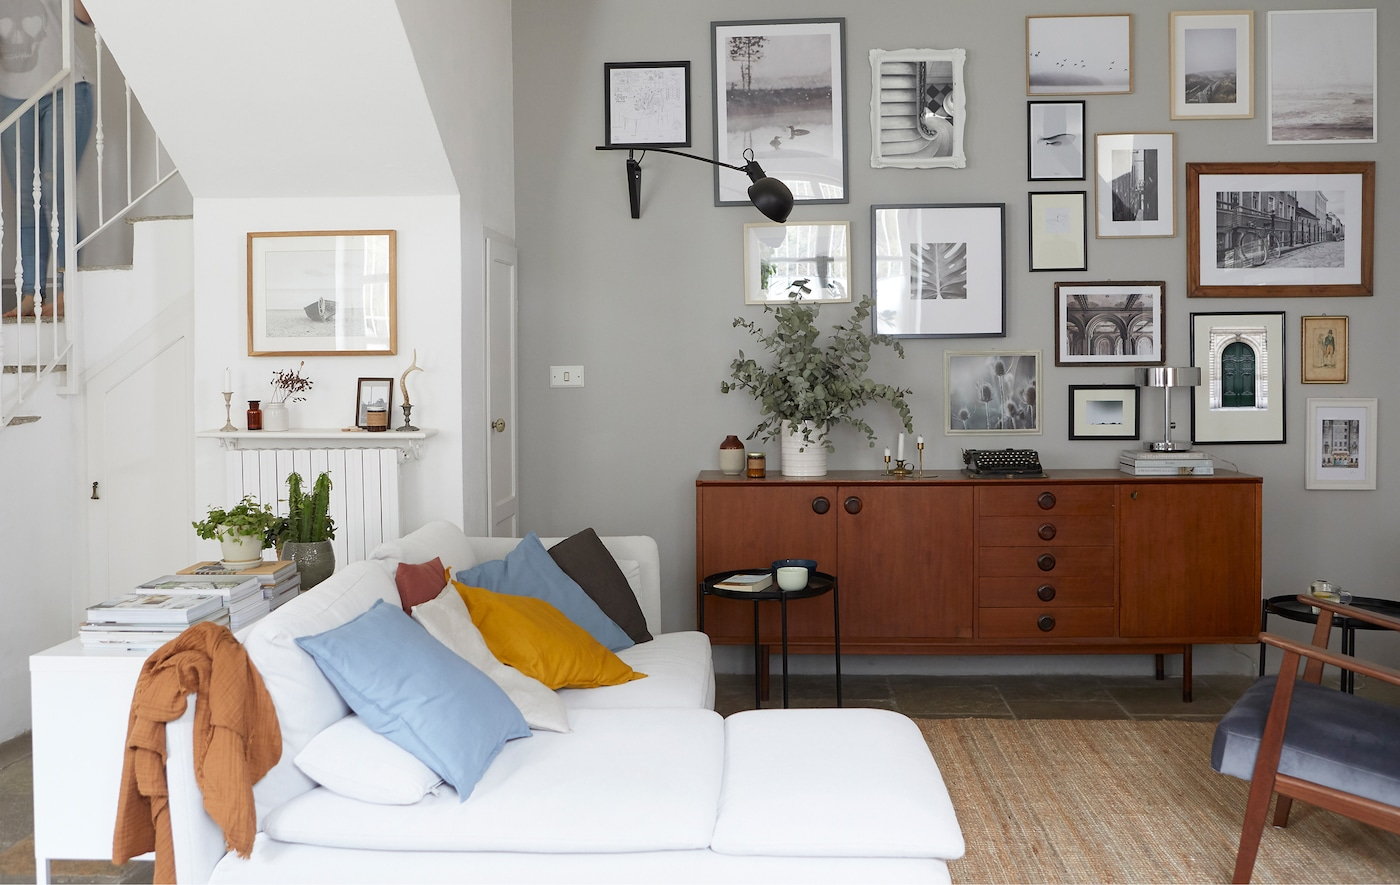 A living room with white corner sofa, dark wooden sideboard and gallery of pictures on the wall.